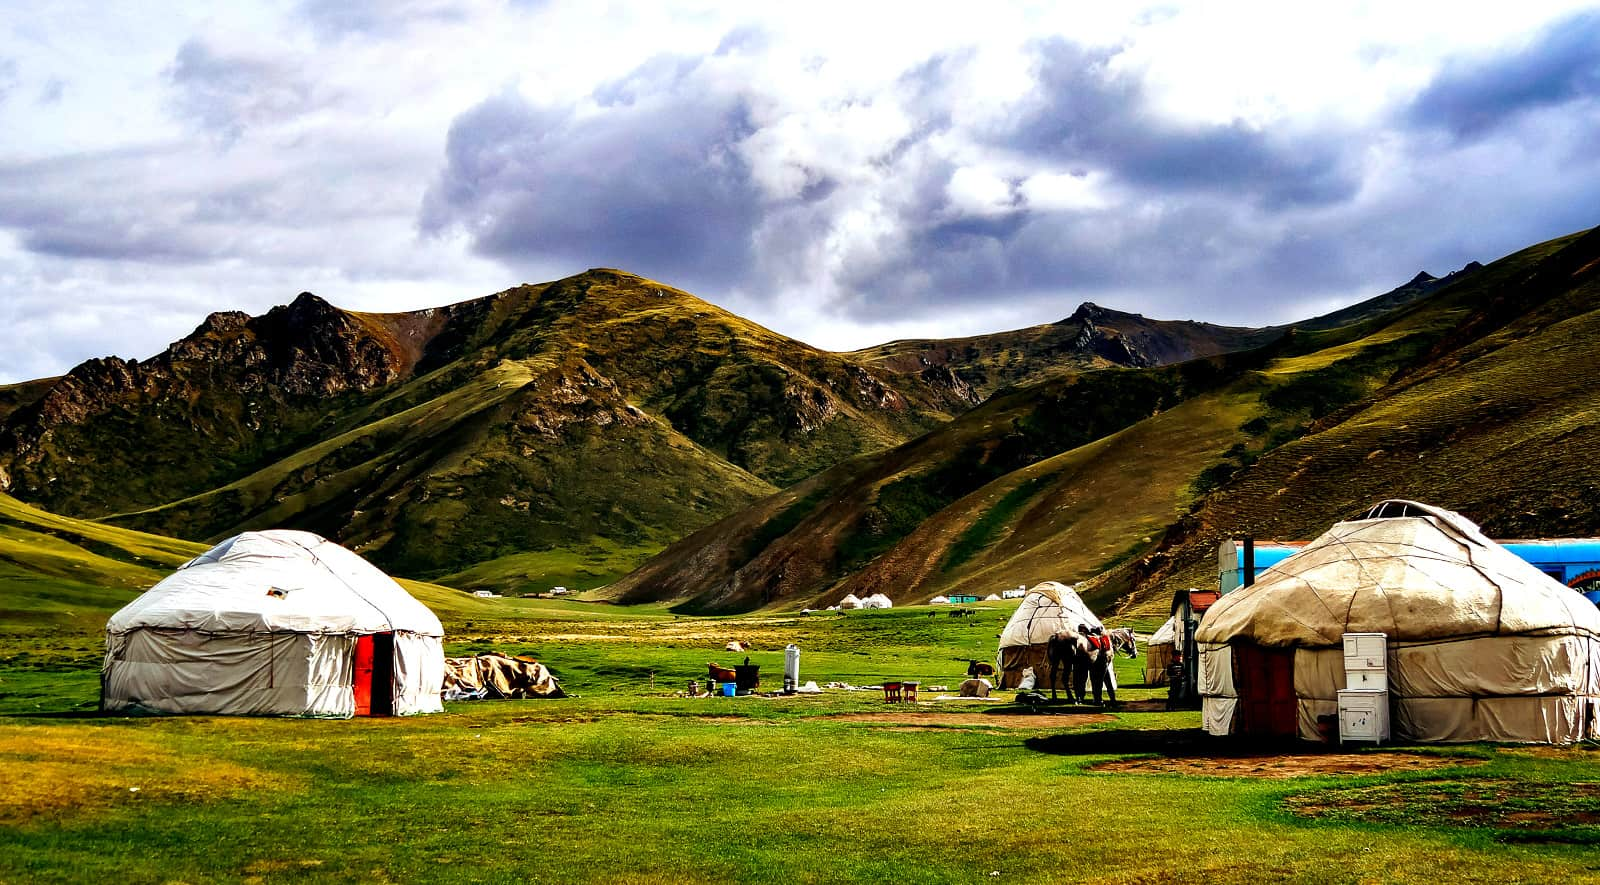 Traveling in Kyrgyzstan - Journal of Nomads